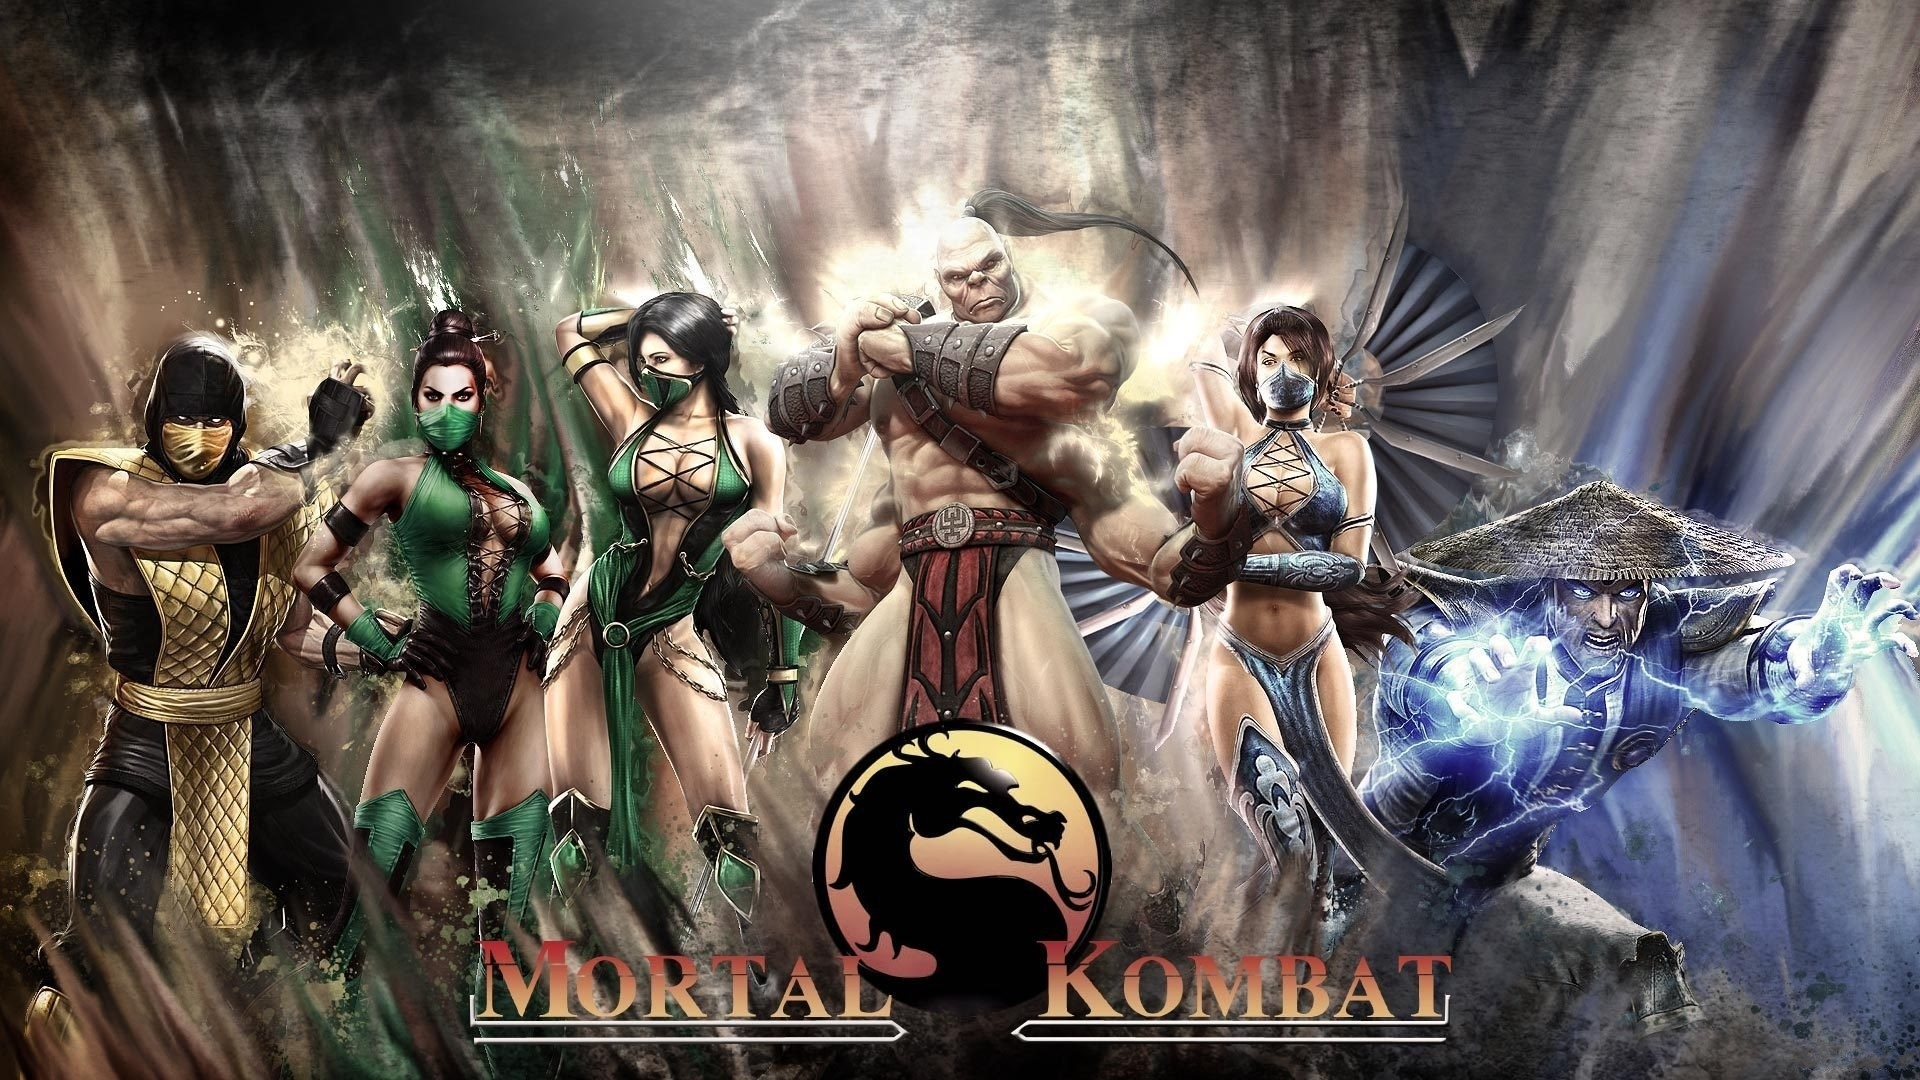 And pictures names characters kombat mortal